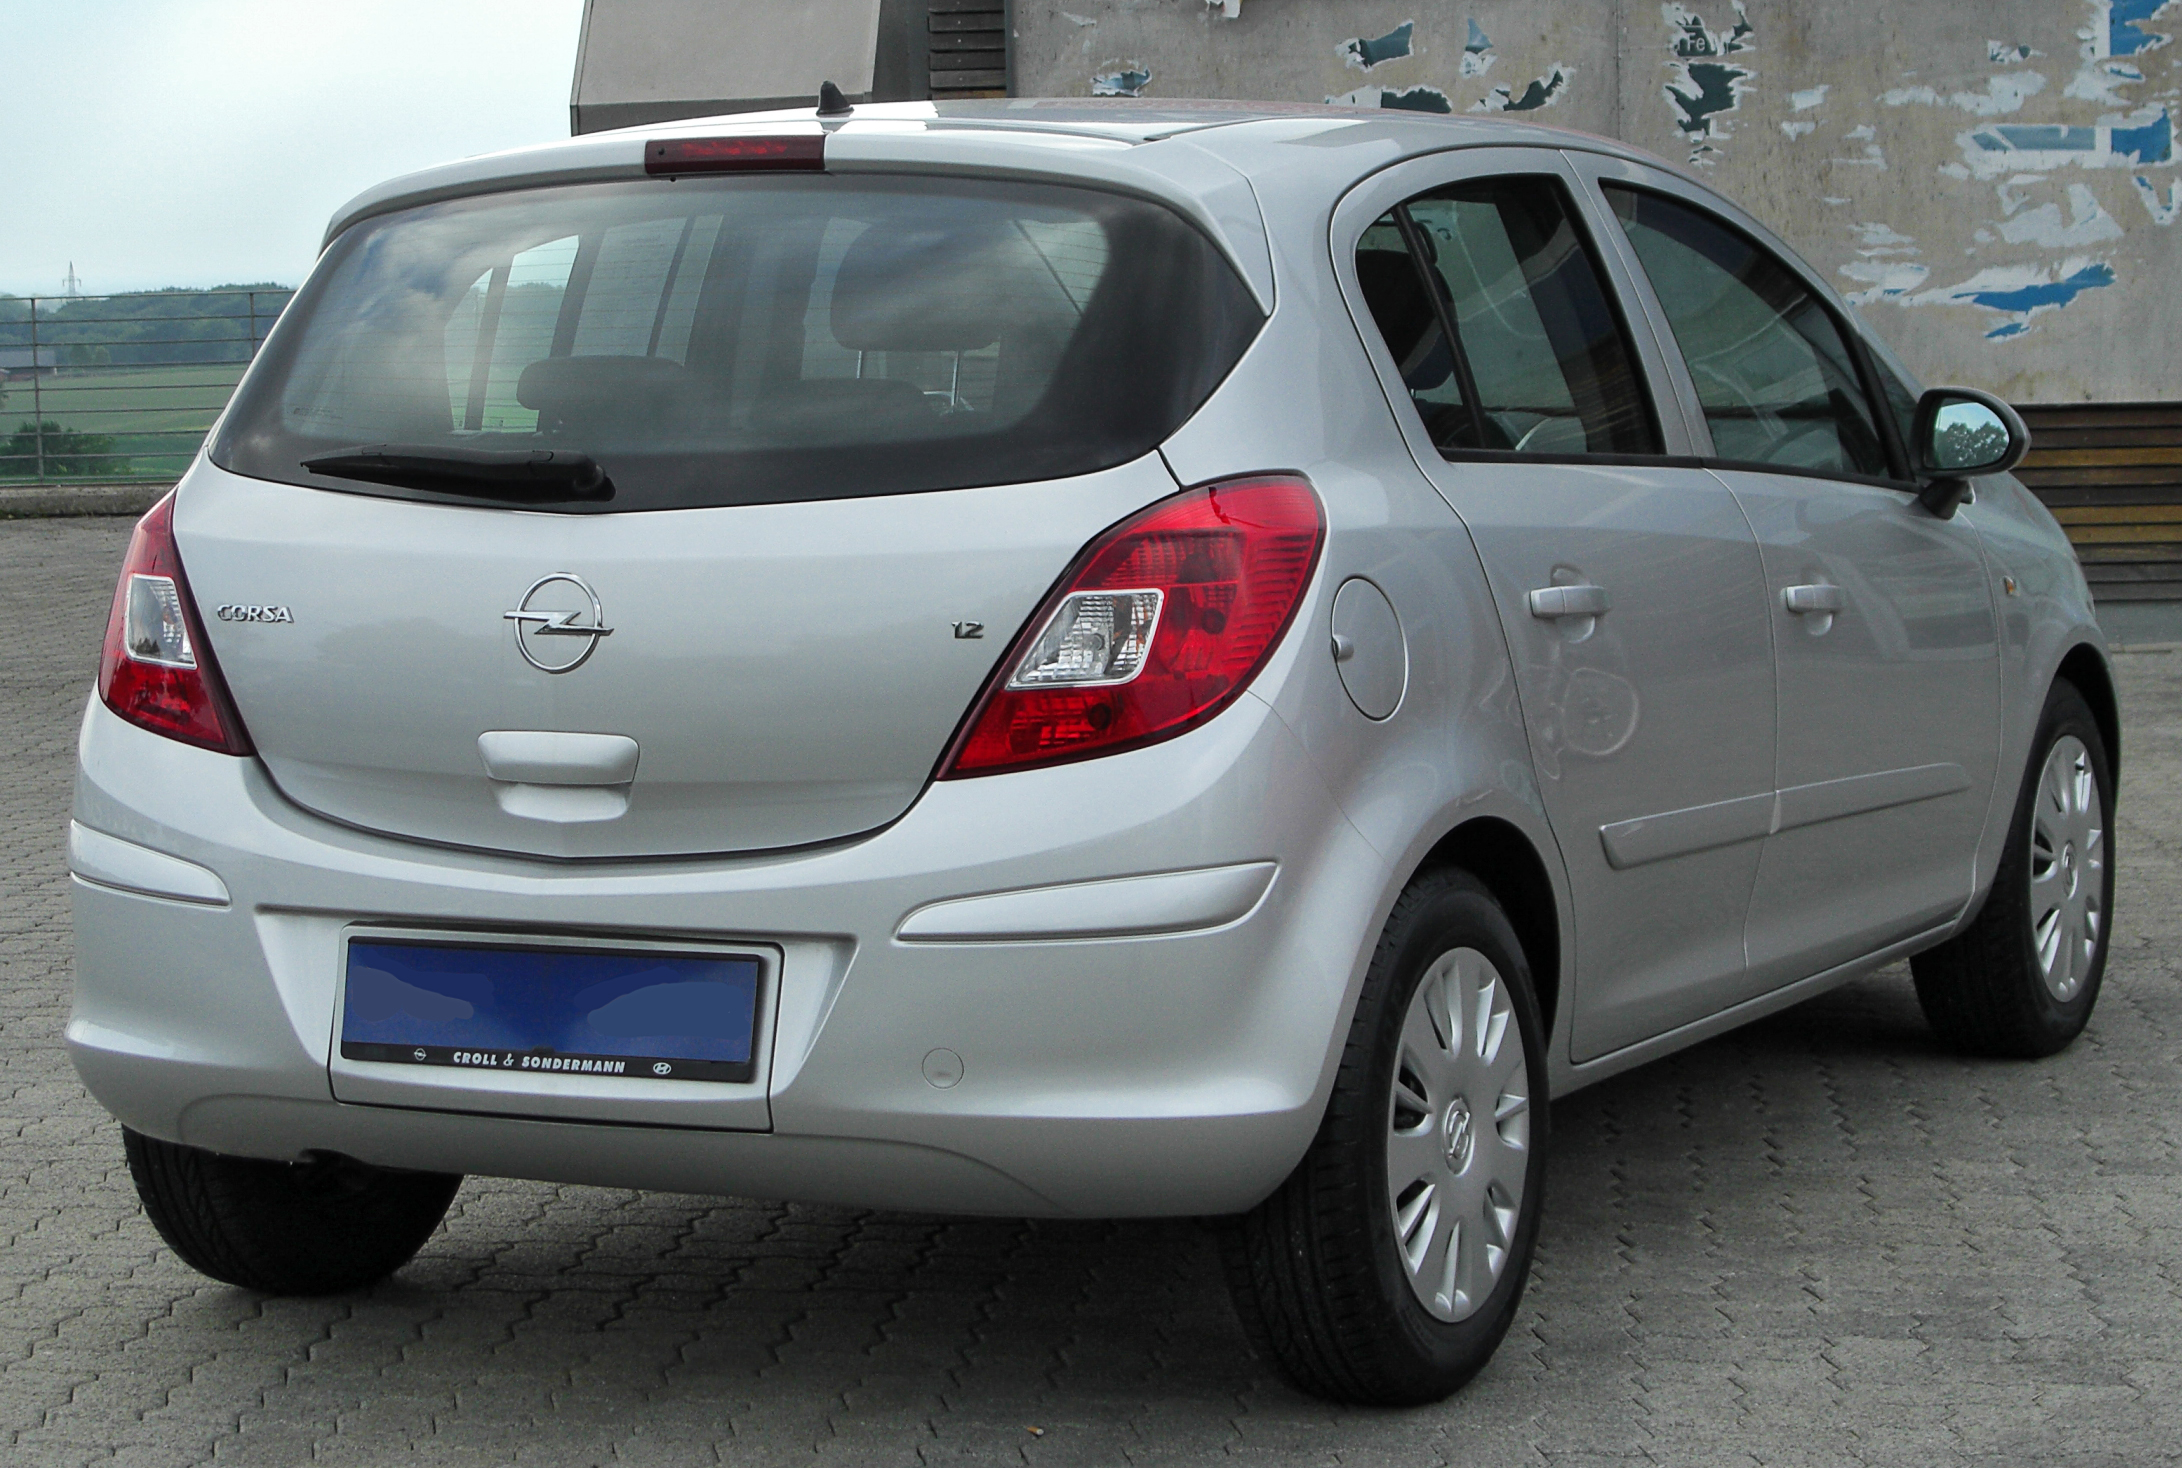 Opel corsa 1 2 2010 technical specifications interior for Opel corsa 2010 interior